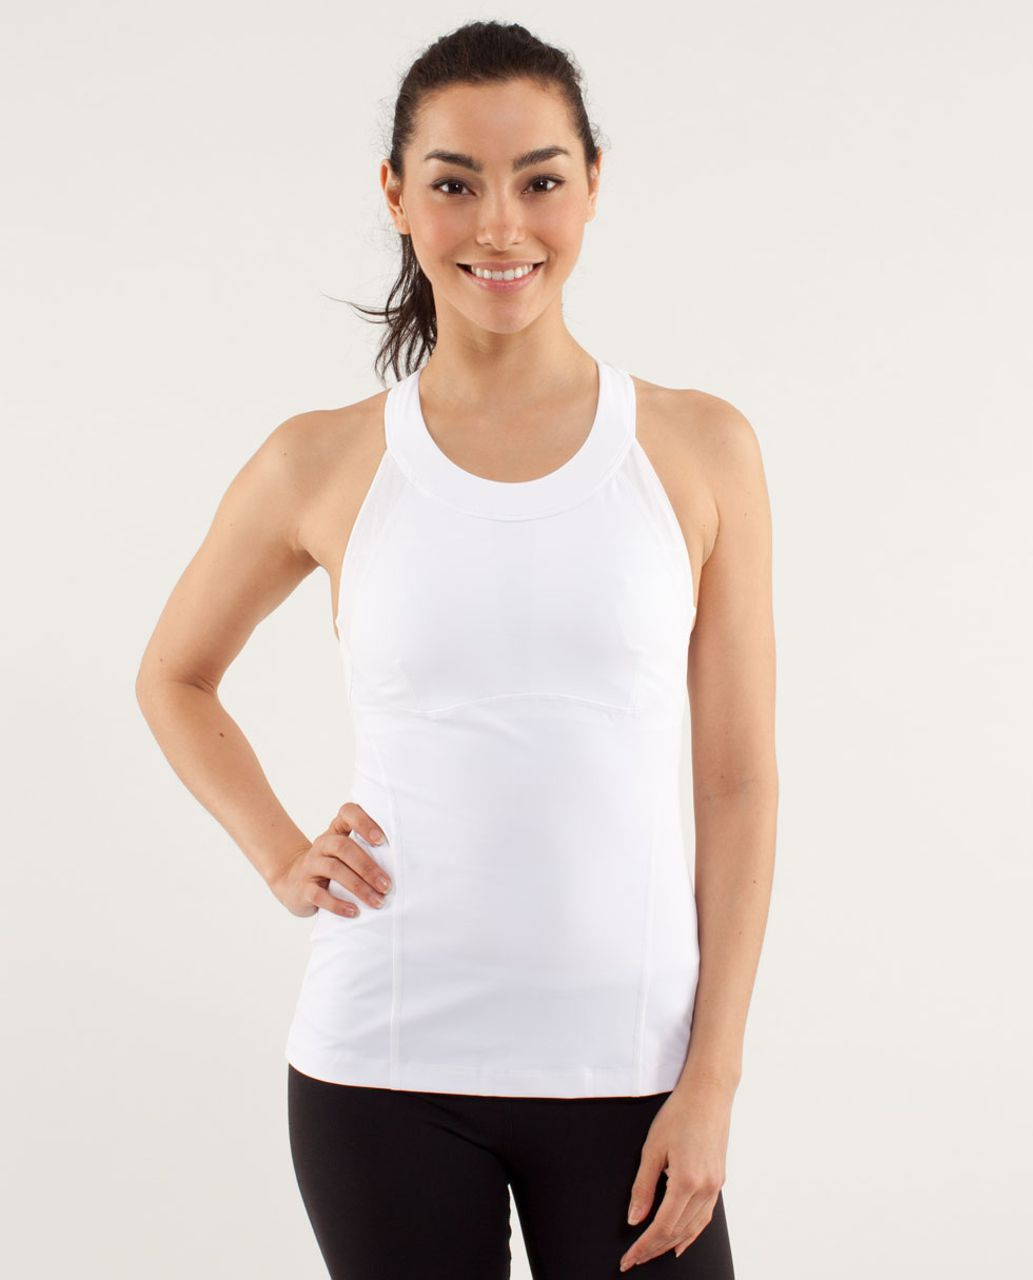 822a52fcac3a6 Lululemon Run  Make It Count Tank - White - lulu fanatics